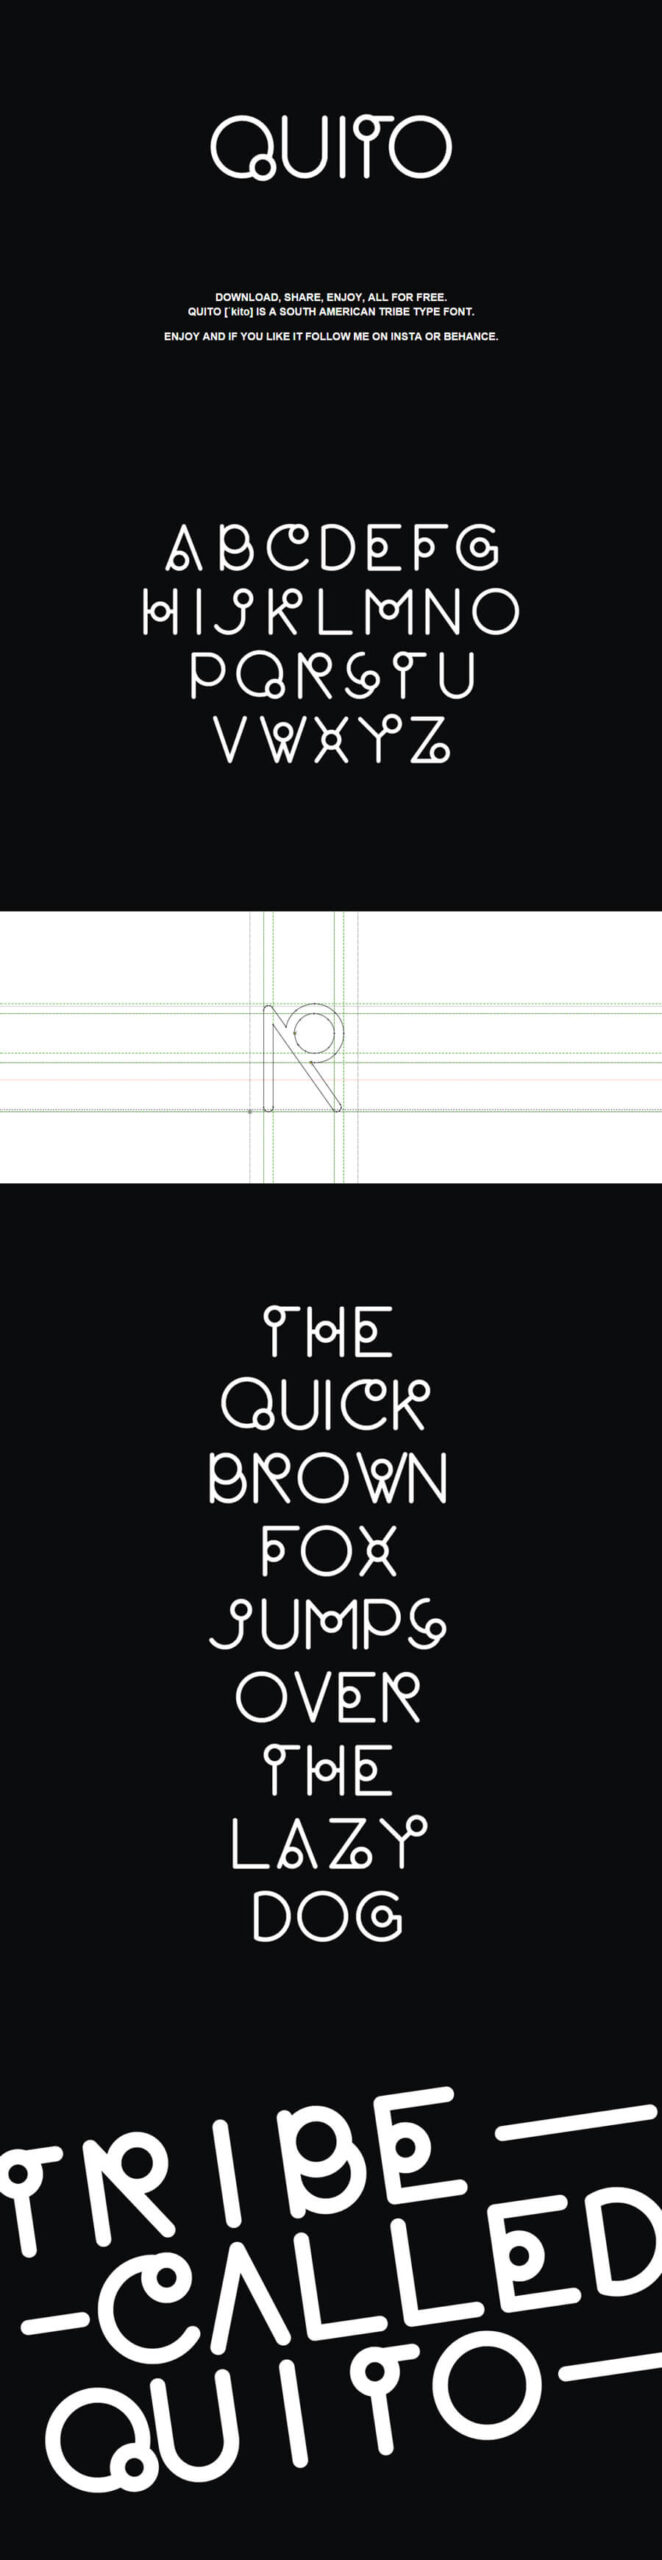 Free Lettering Quito Font (1)